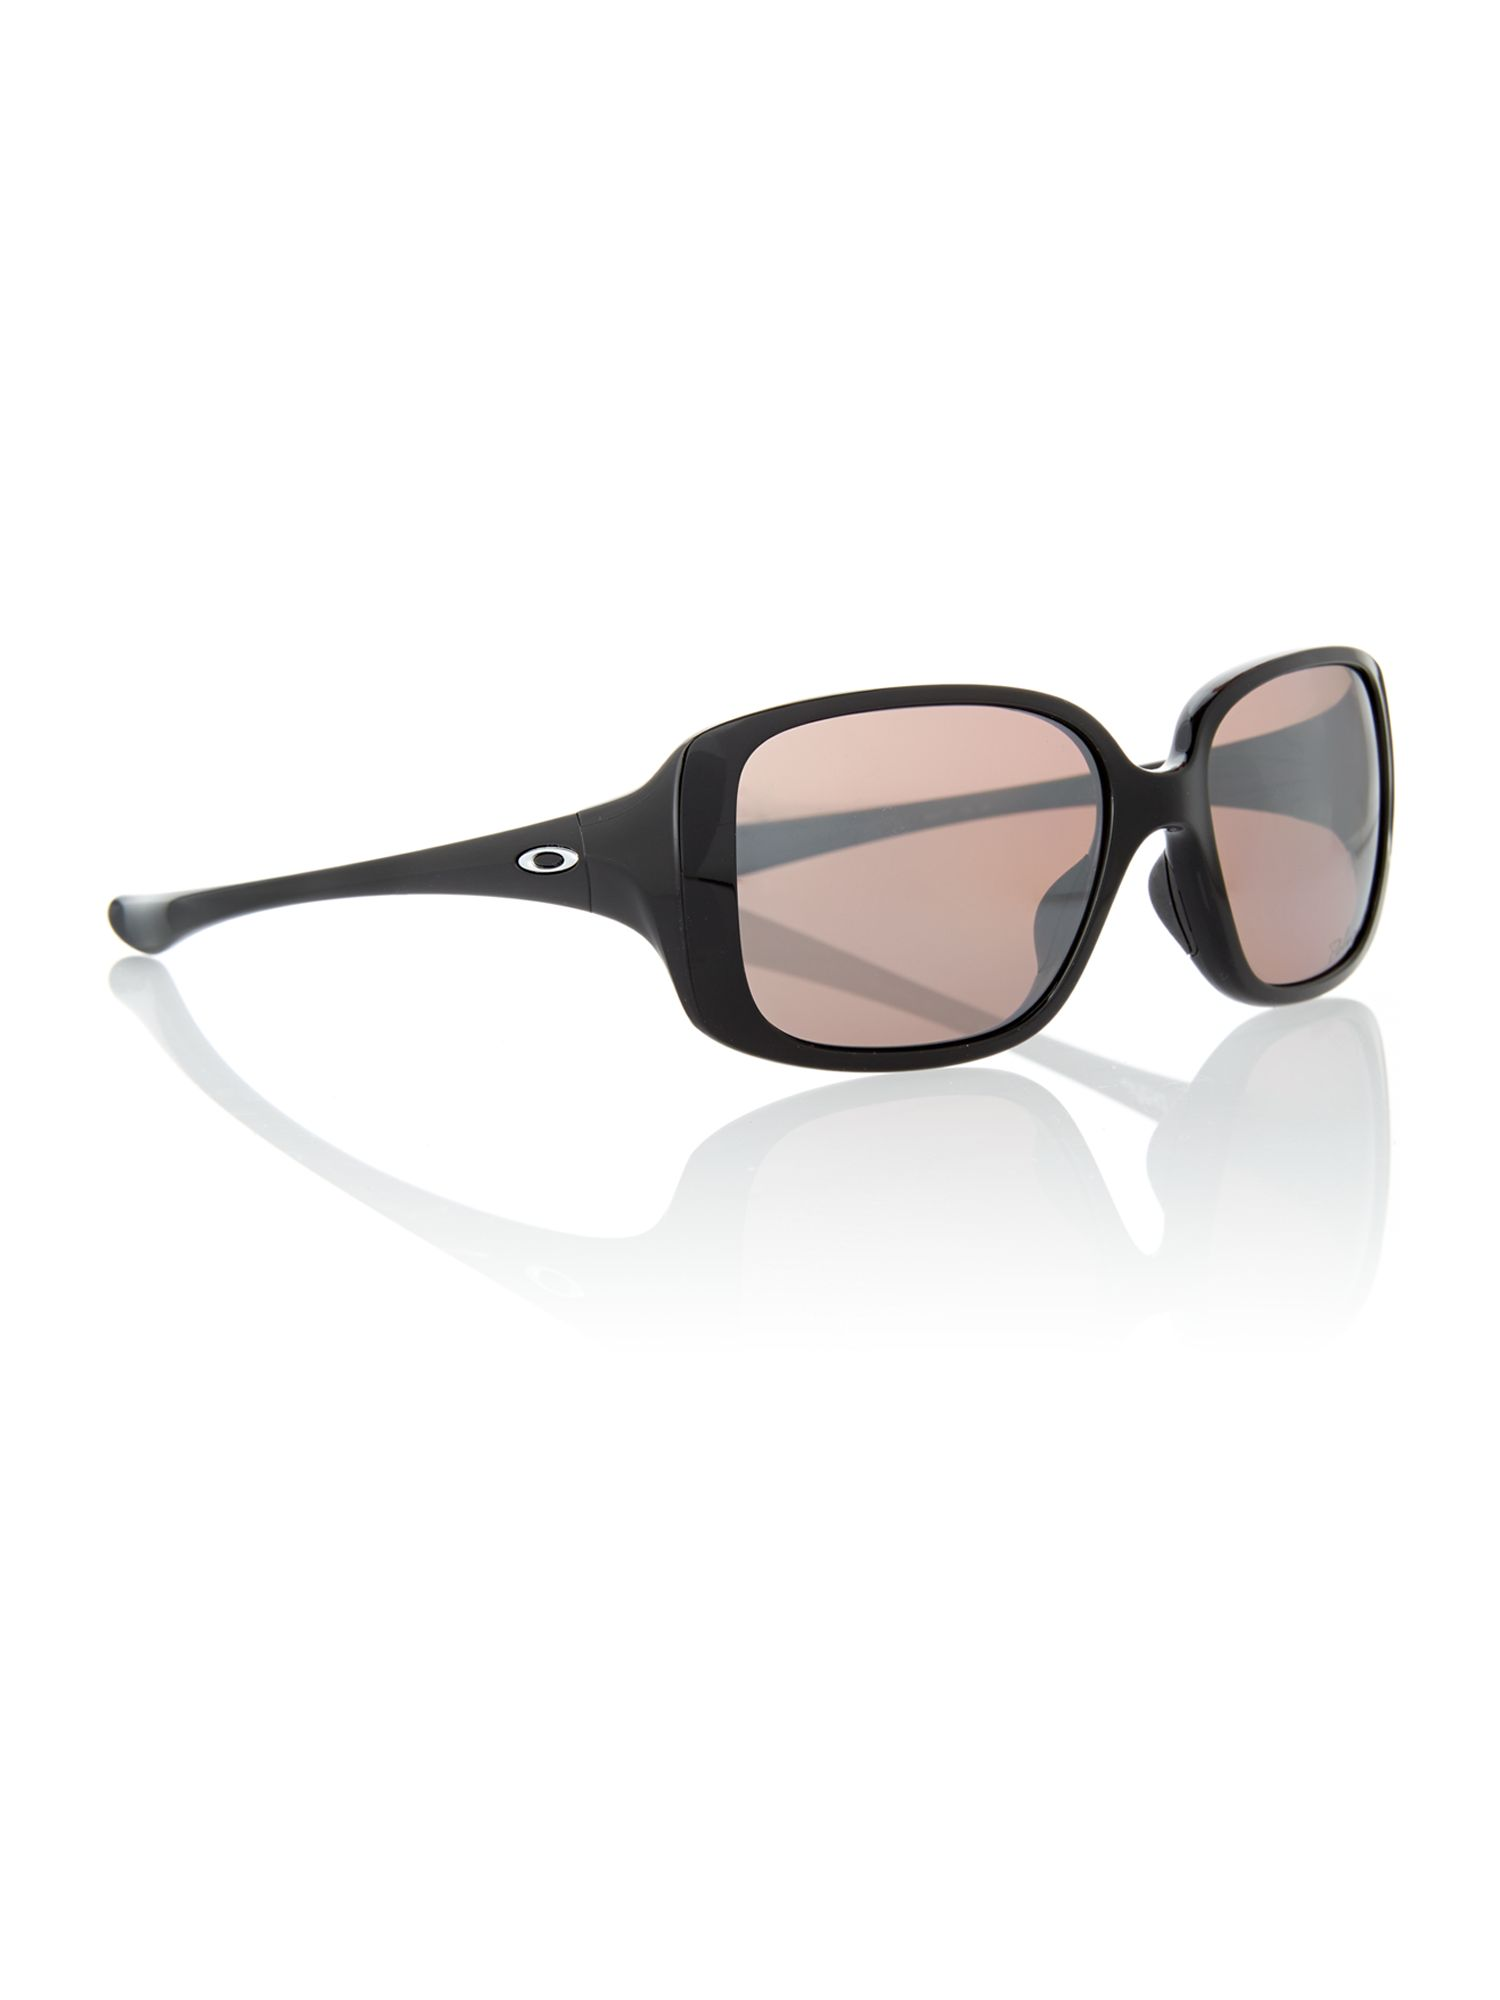 Ladies 0oo9193 sunglasses